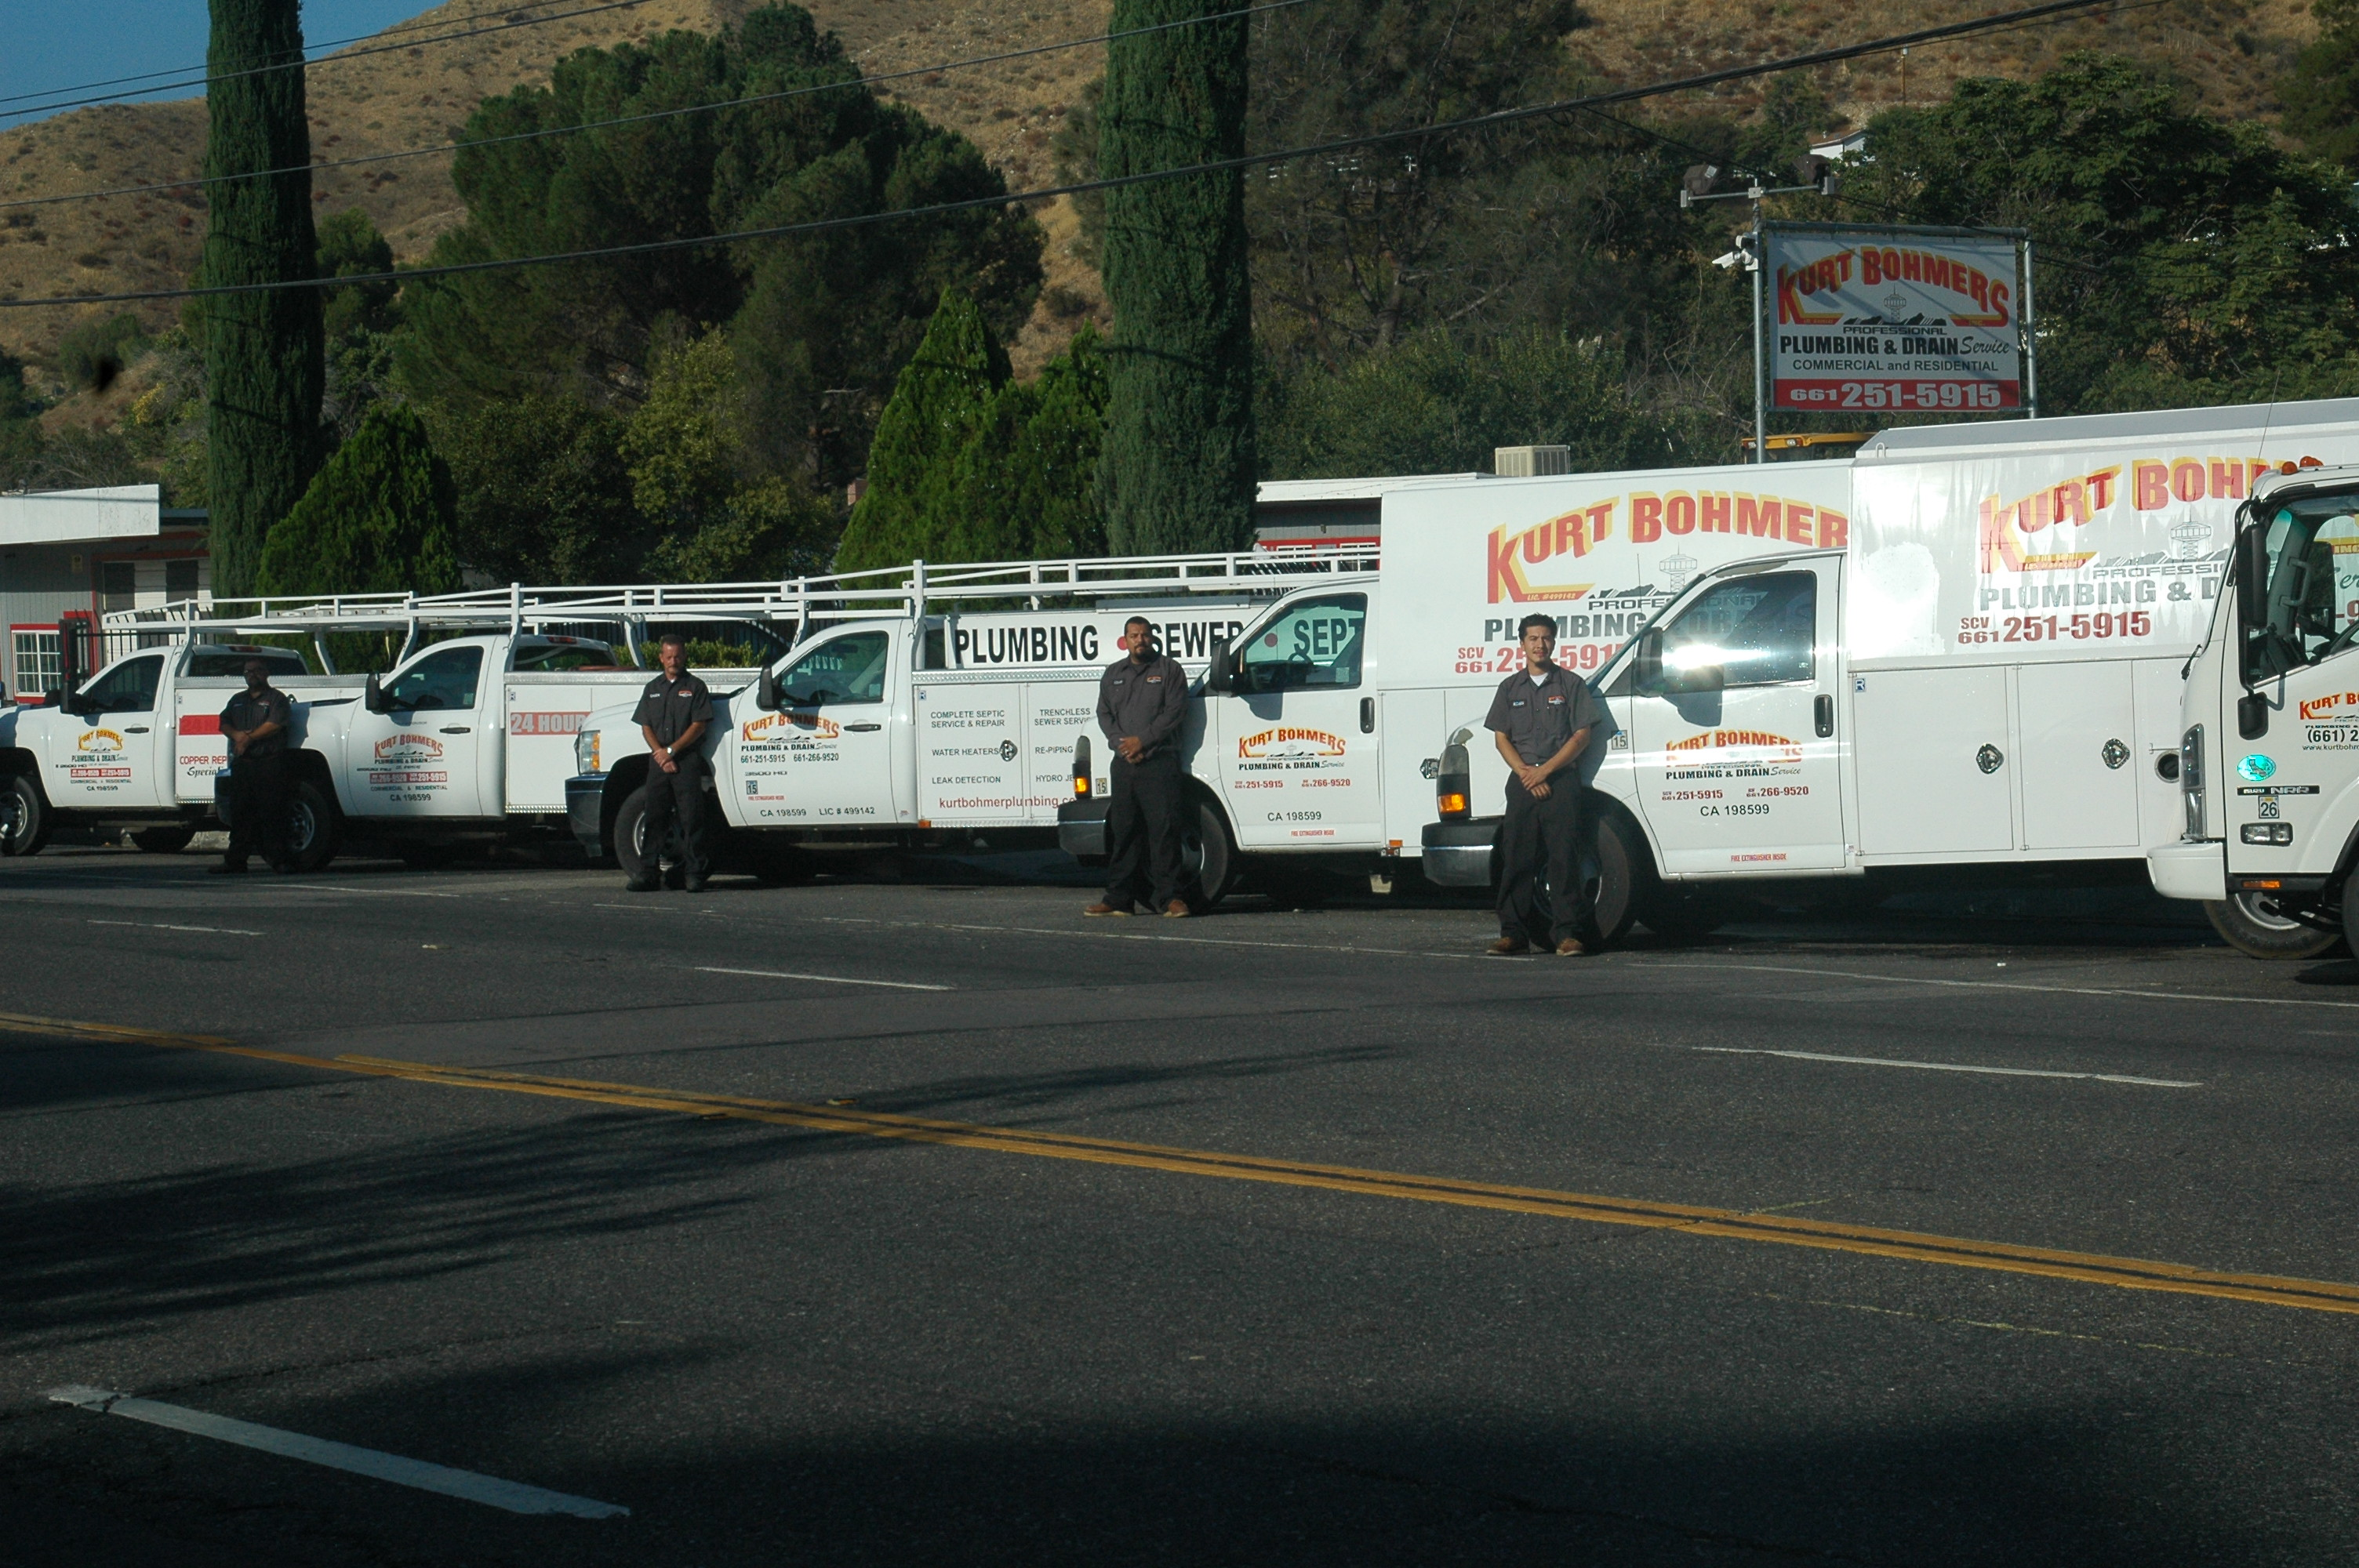 Kurt Bohmers Plumbing employees standing in front of their service trucks